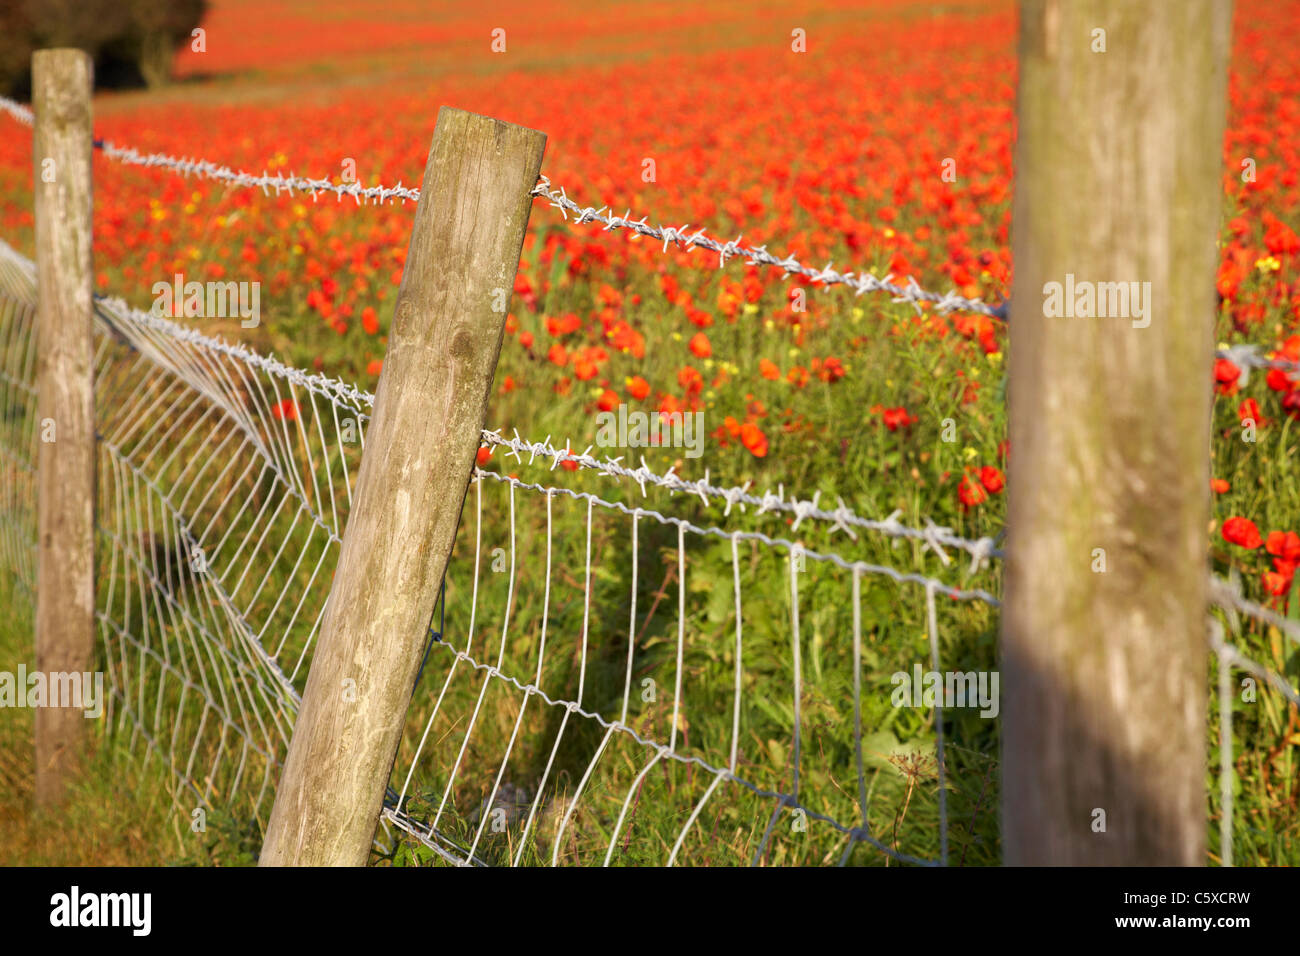 Barbed wire fence alongside red poppy field in October - Stock Image